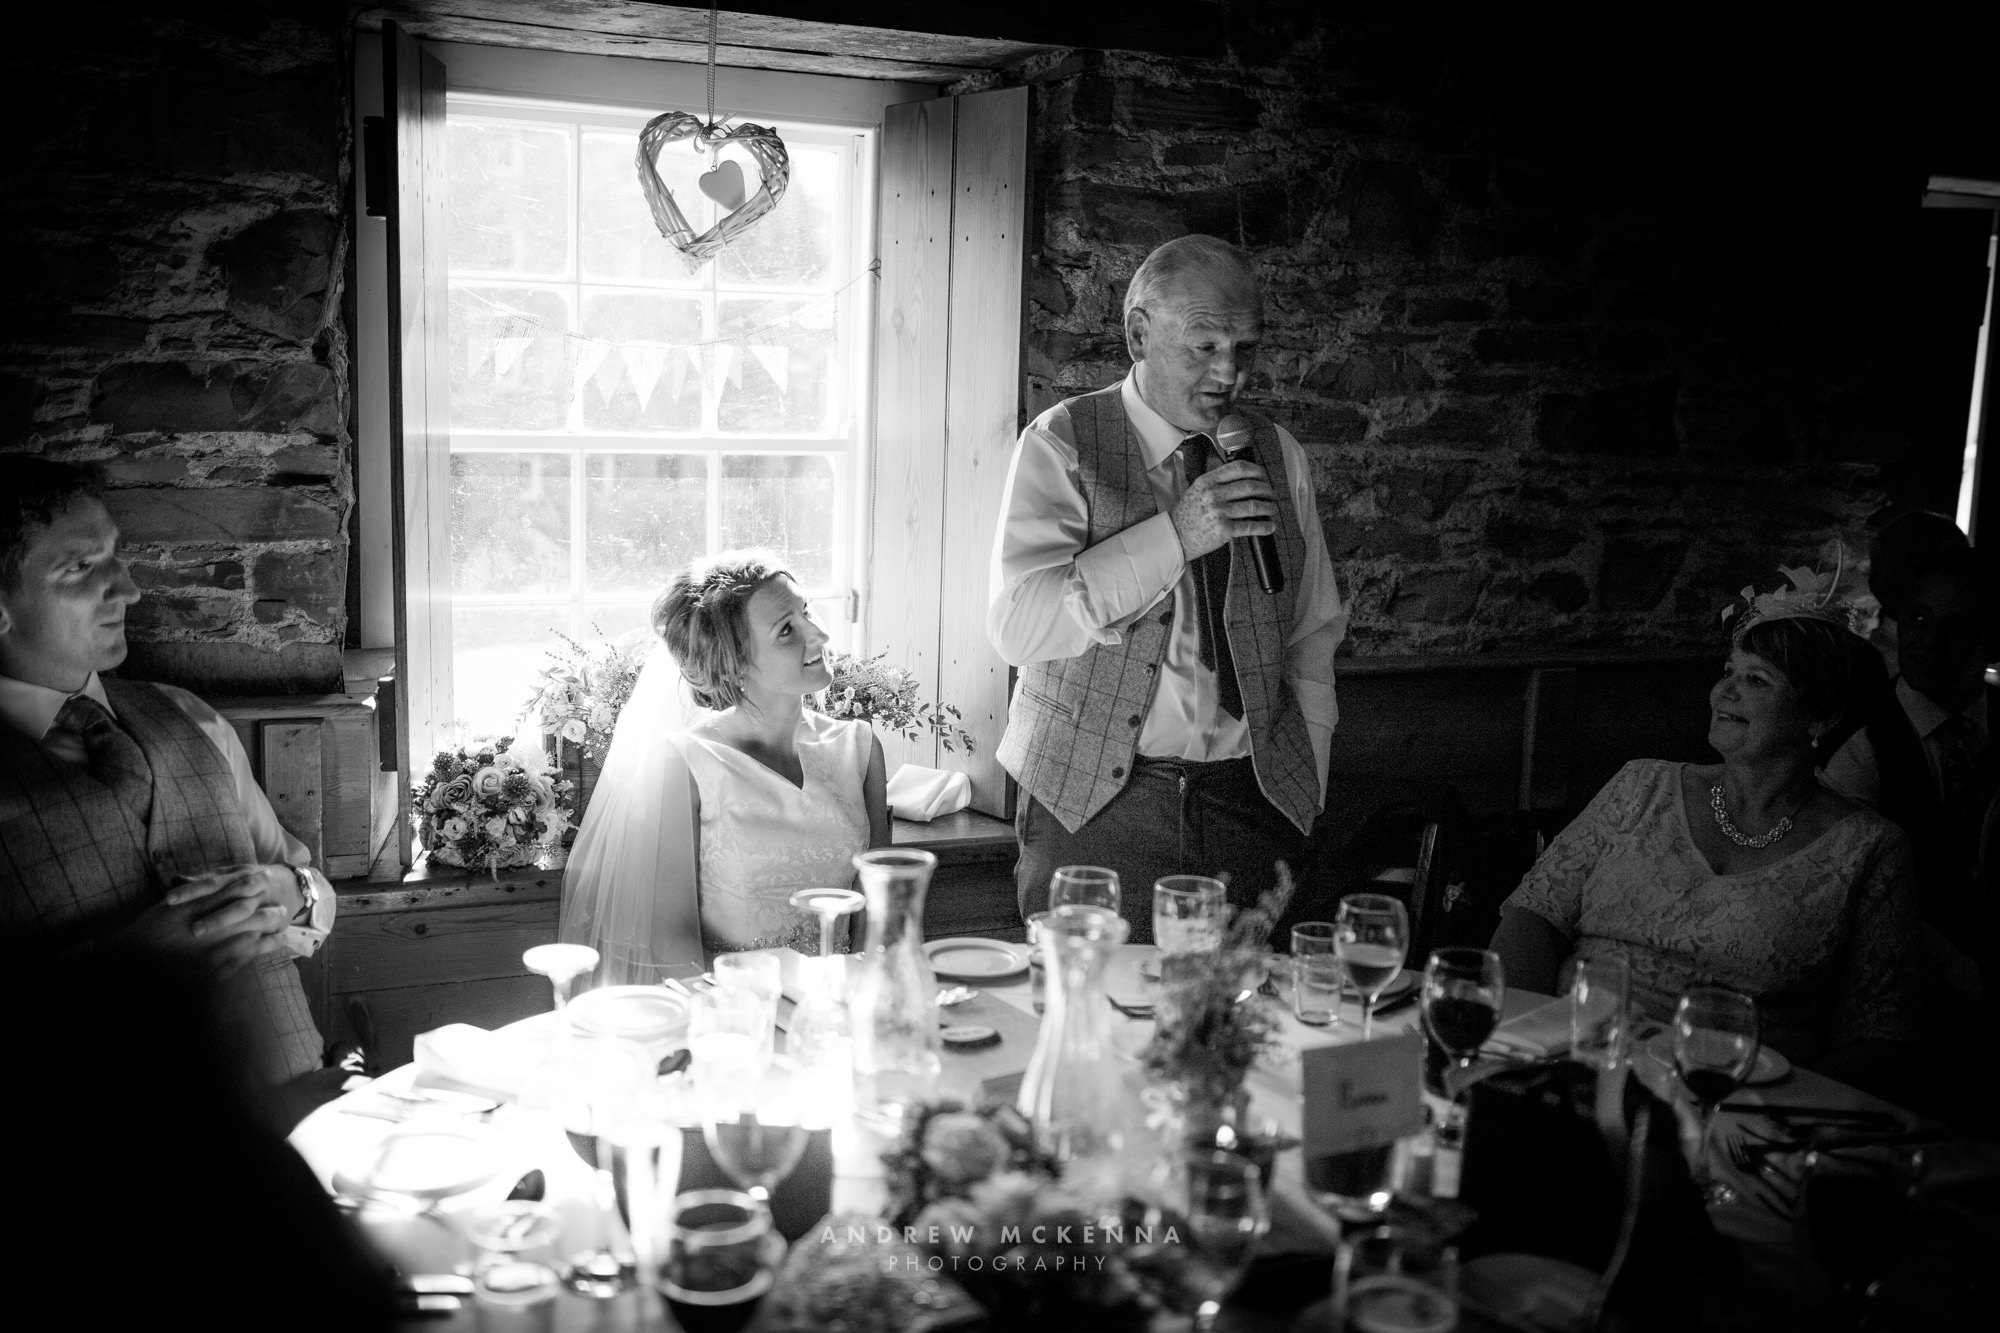 Michaela & Chris, Wedding Photography. The Mill At Ballyduggan. Photographer By Andrew McKenna Photography Newcastle County Down, Northern Ireland. (www.amckphotography.com)